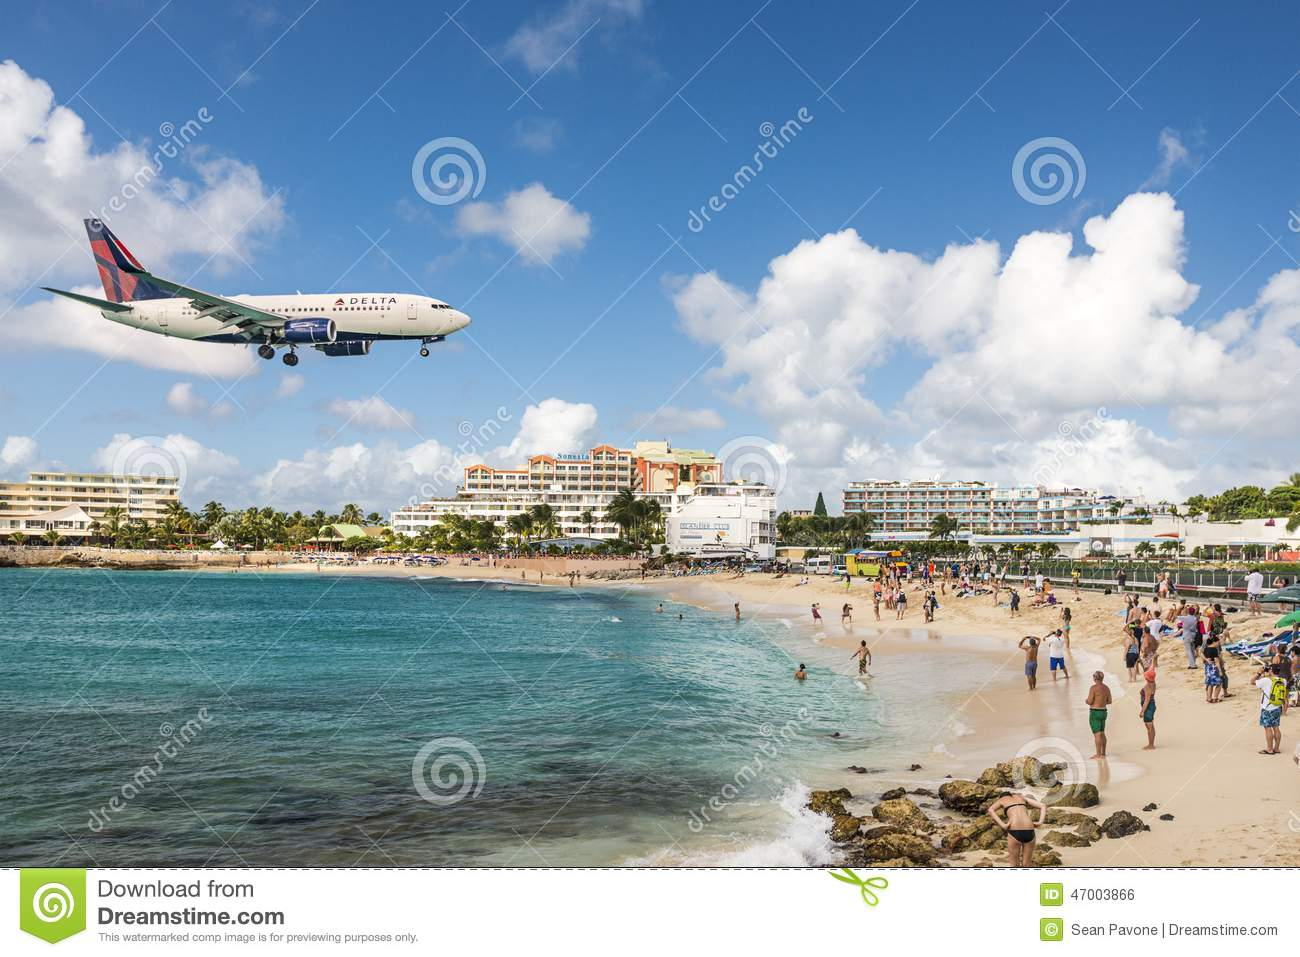 PHILIPSBURG, SINT MAARTEN - DECEMBER 30, 2013: A jet approaches ...